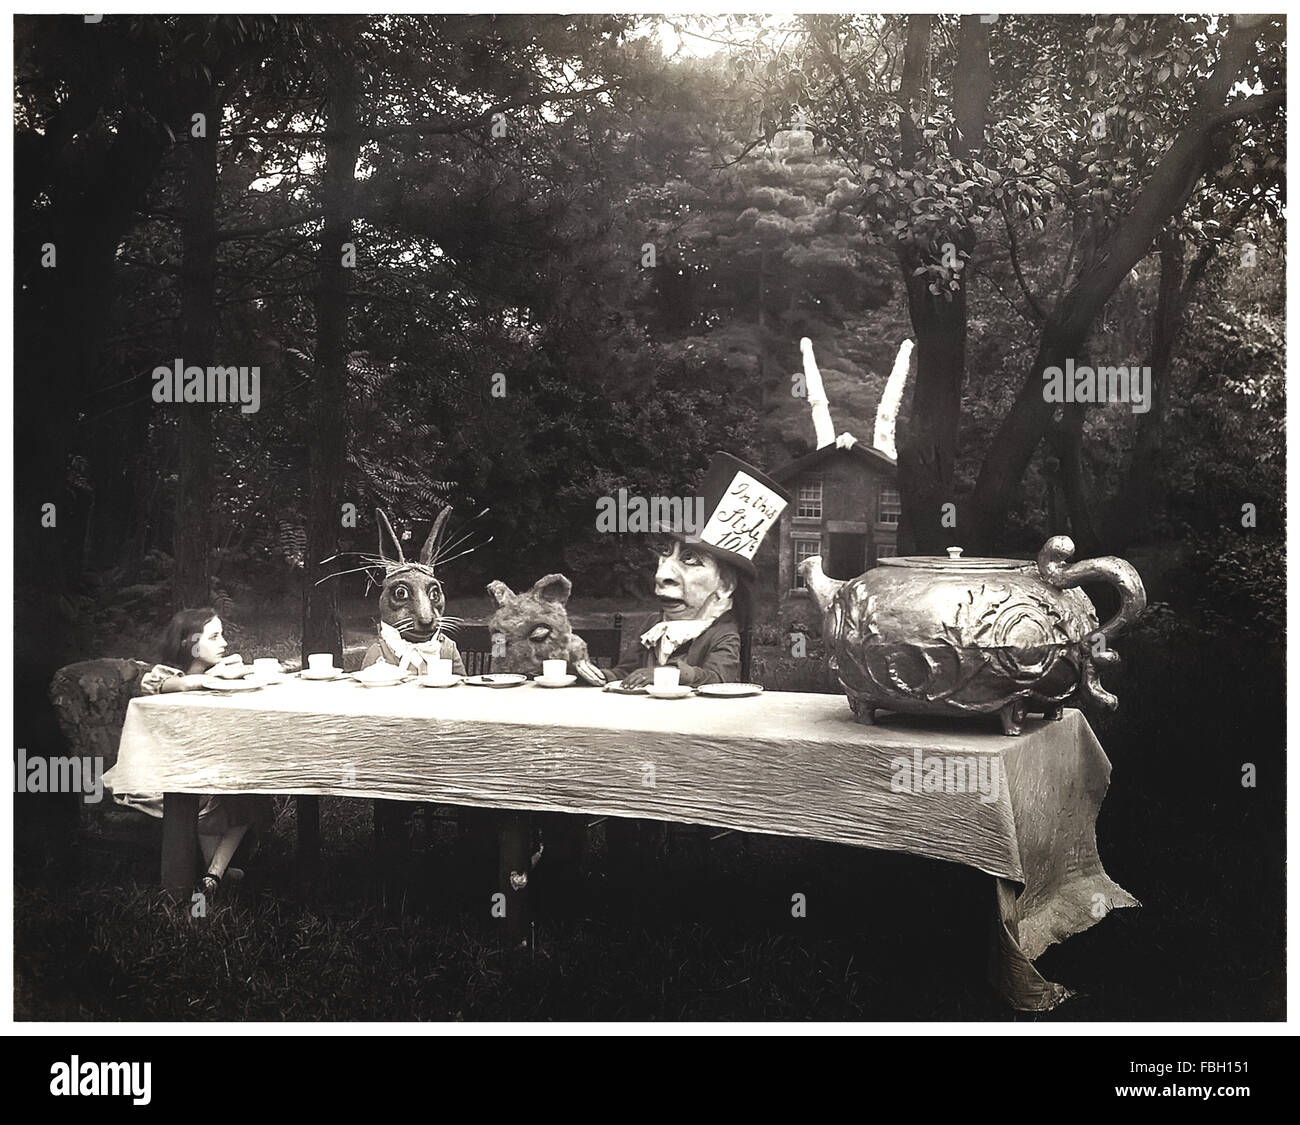 'The Mad Hatter's tea party' scene from 1915 silent movie adaptation of 'Alice in Wonderland' - Stock Image